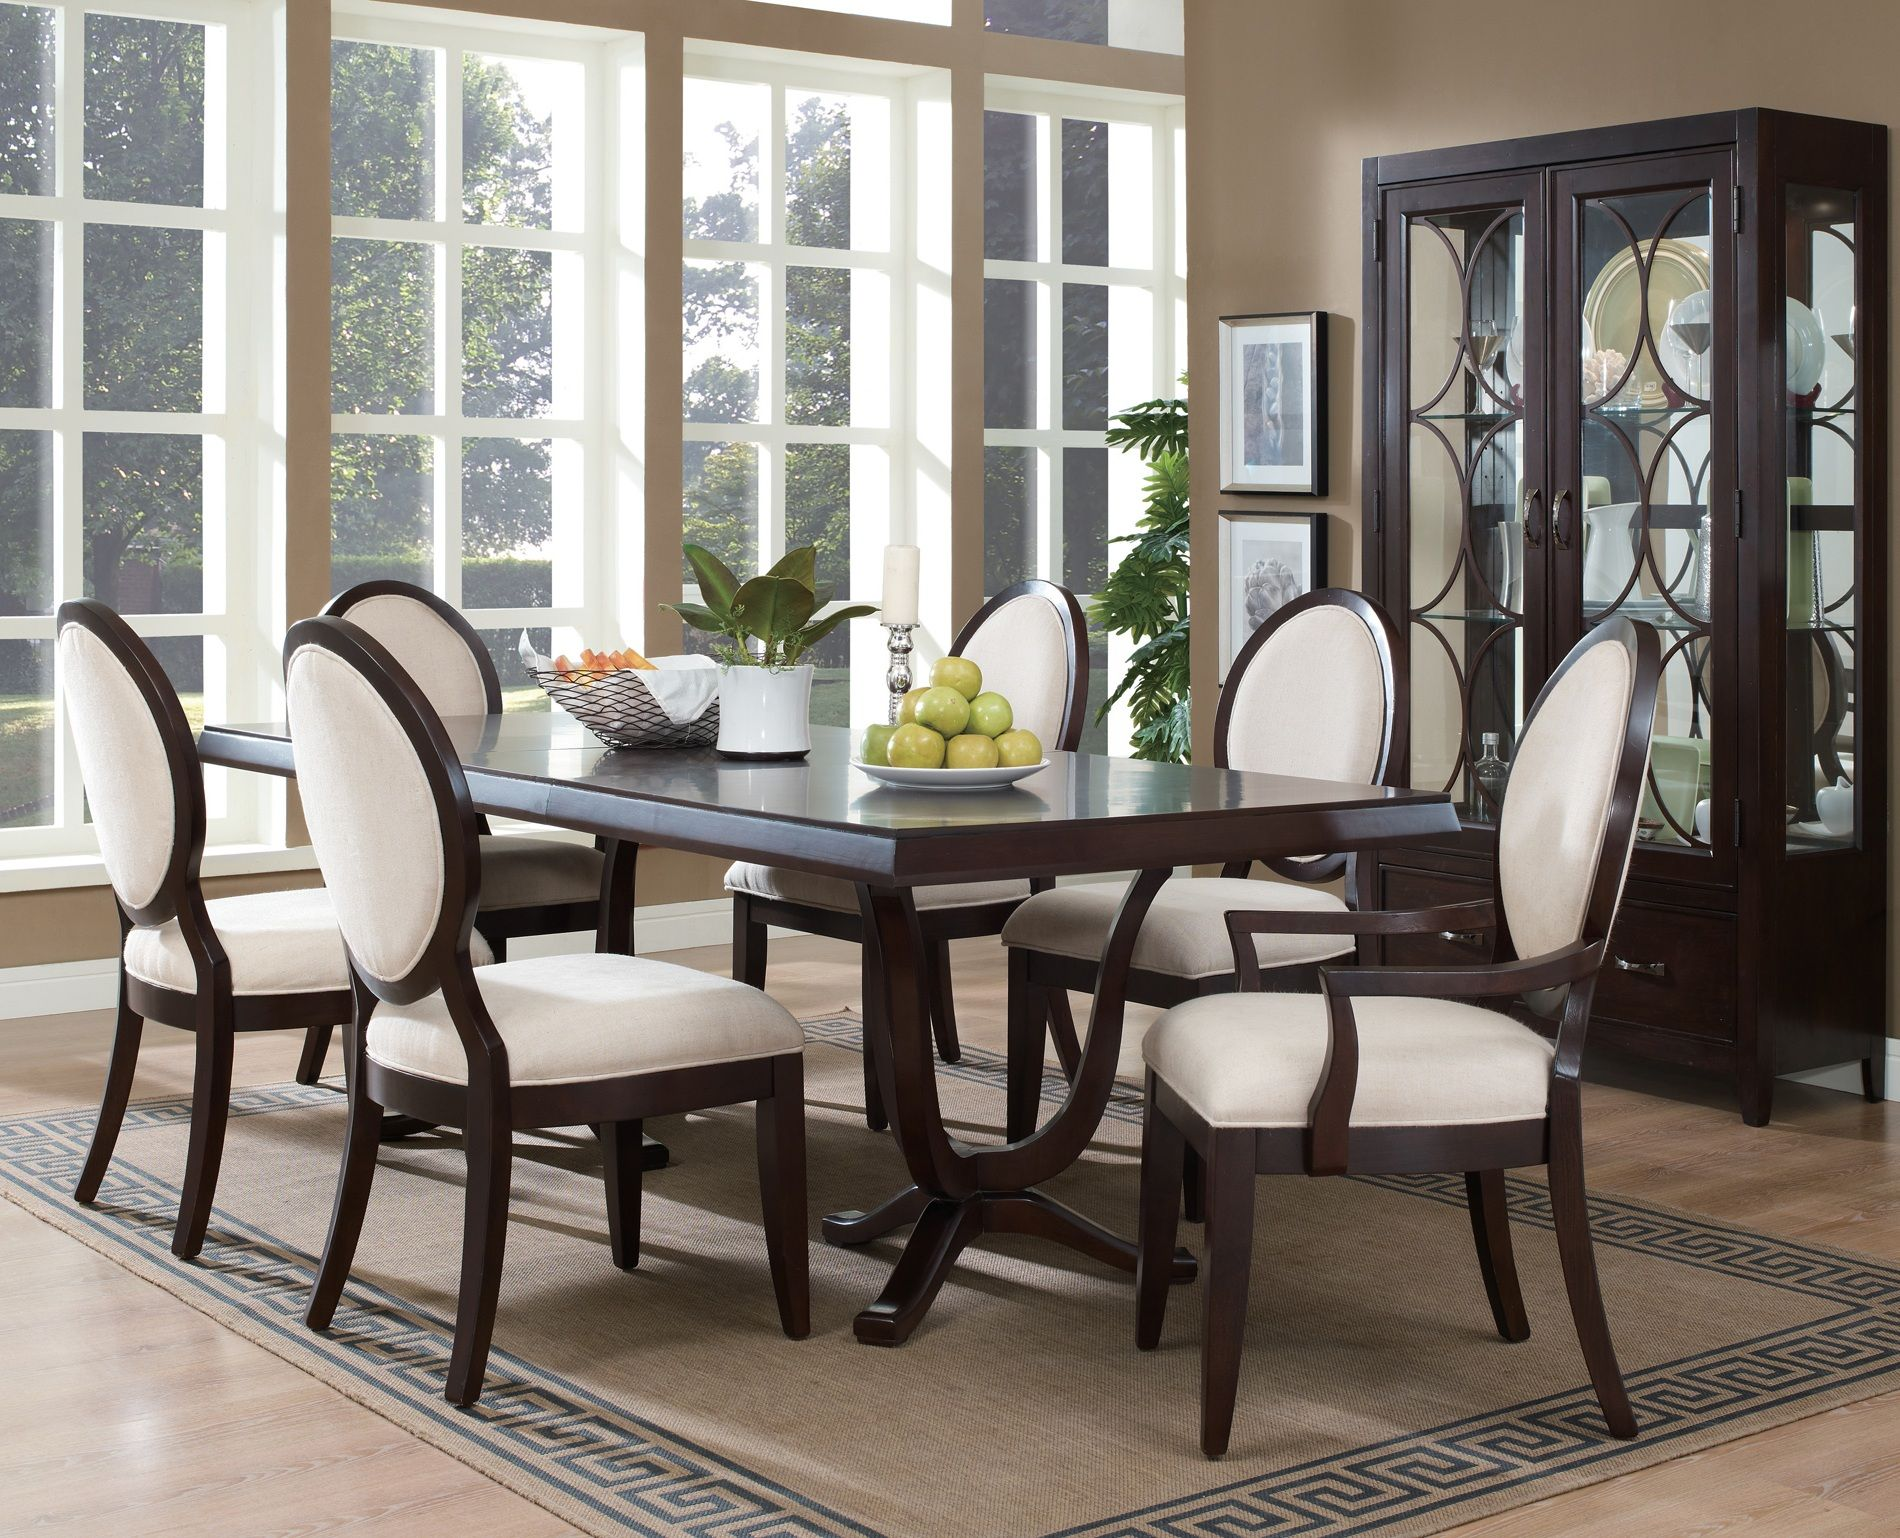 Modern dining room tables and chairs - Modern Dining Room Tables And Chairs 25